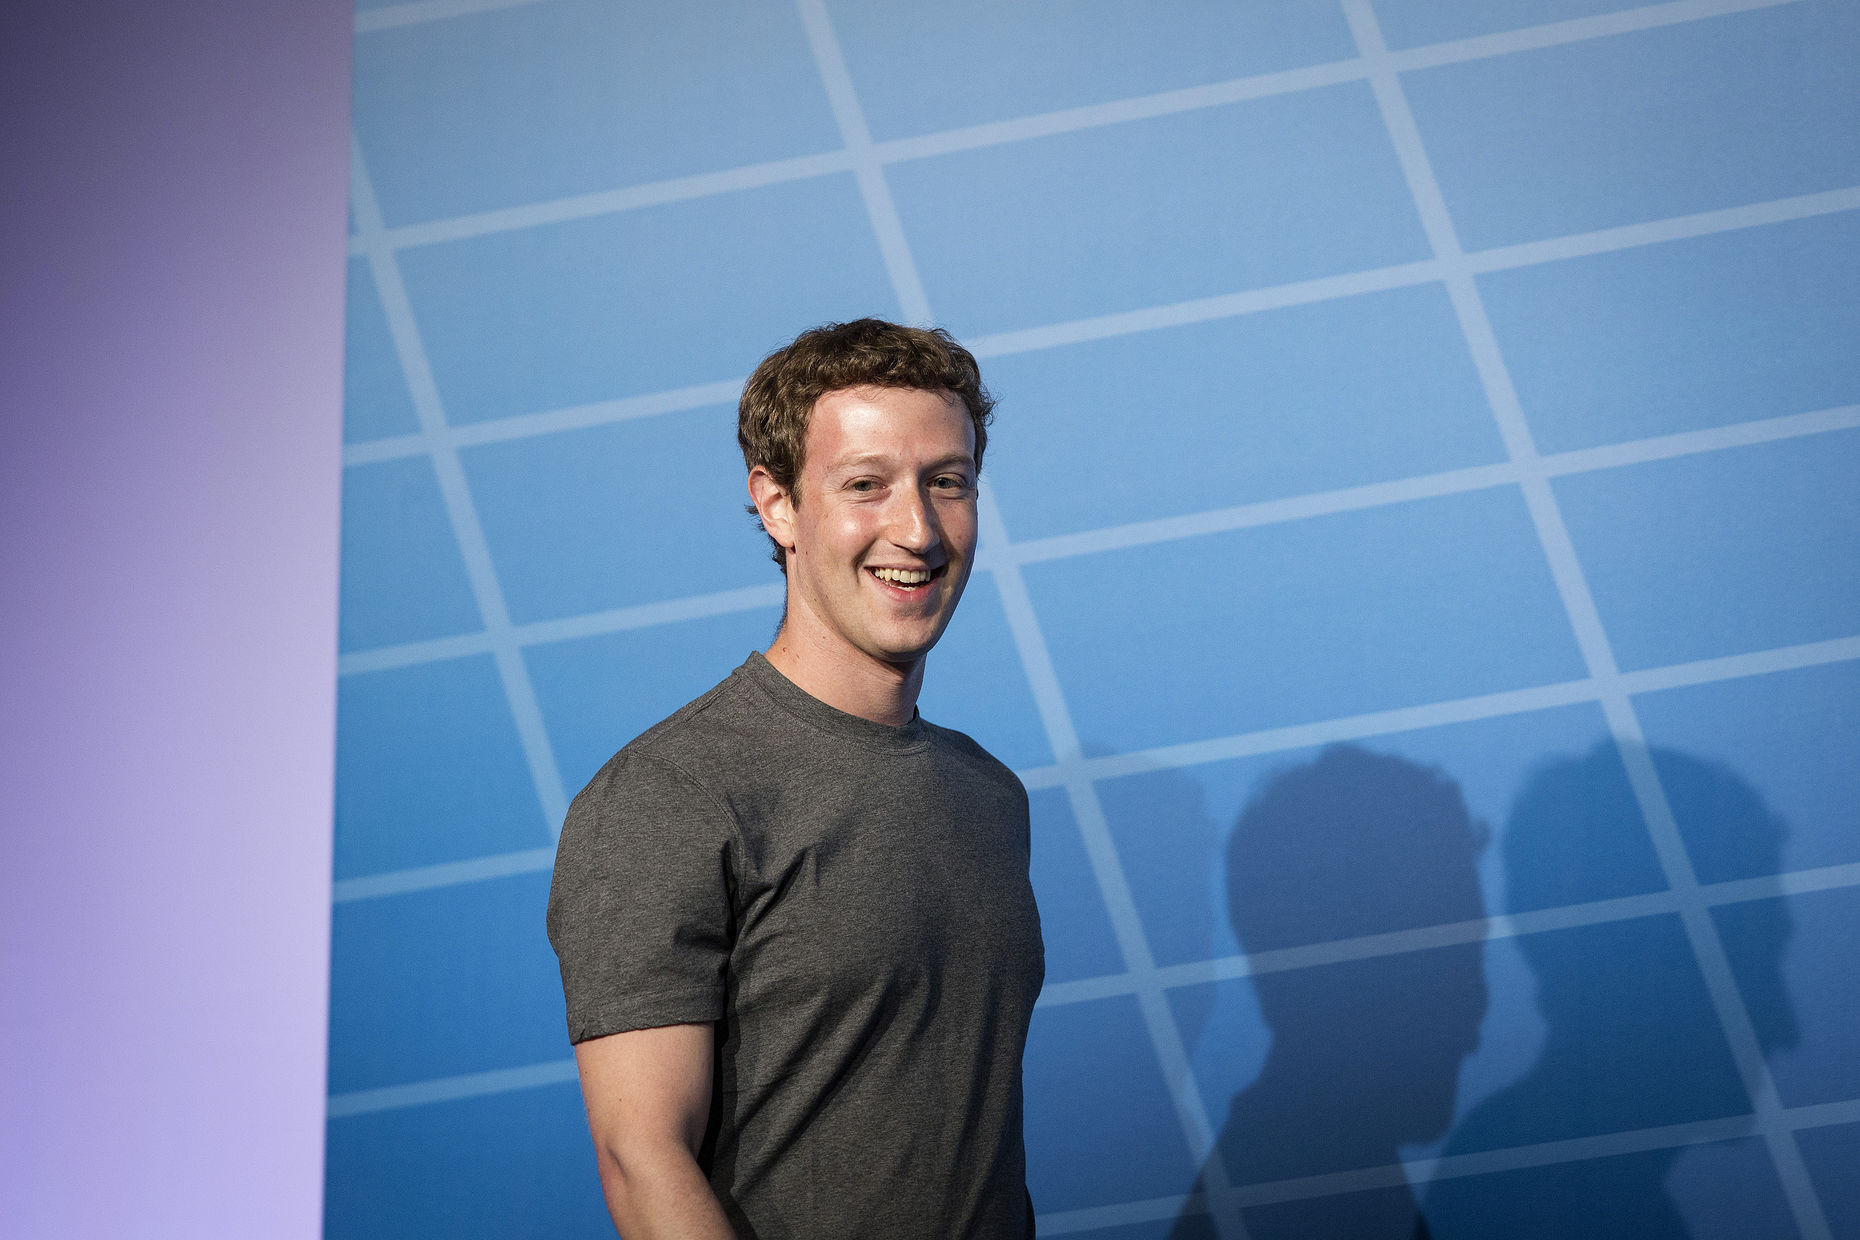 Facebook CEO Mark Zuckerberg. Photo by Bloomberg.